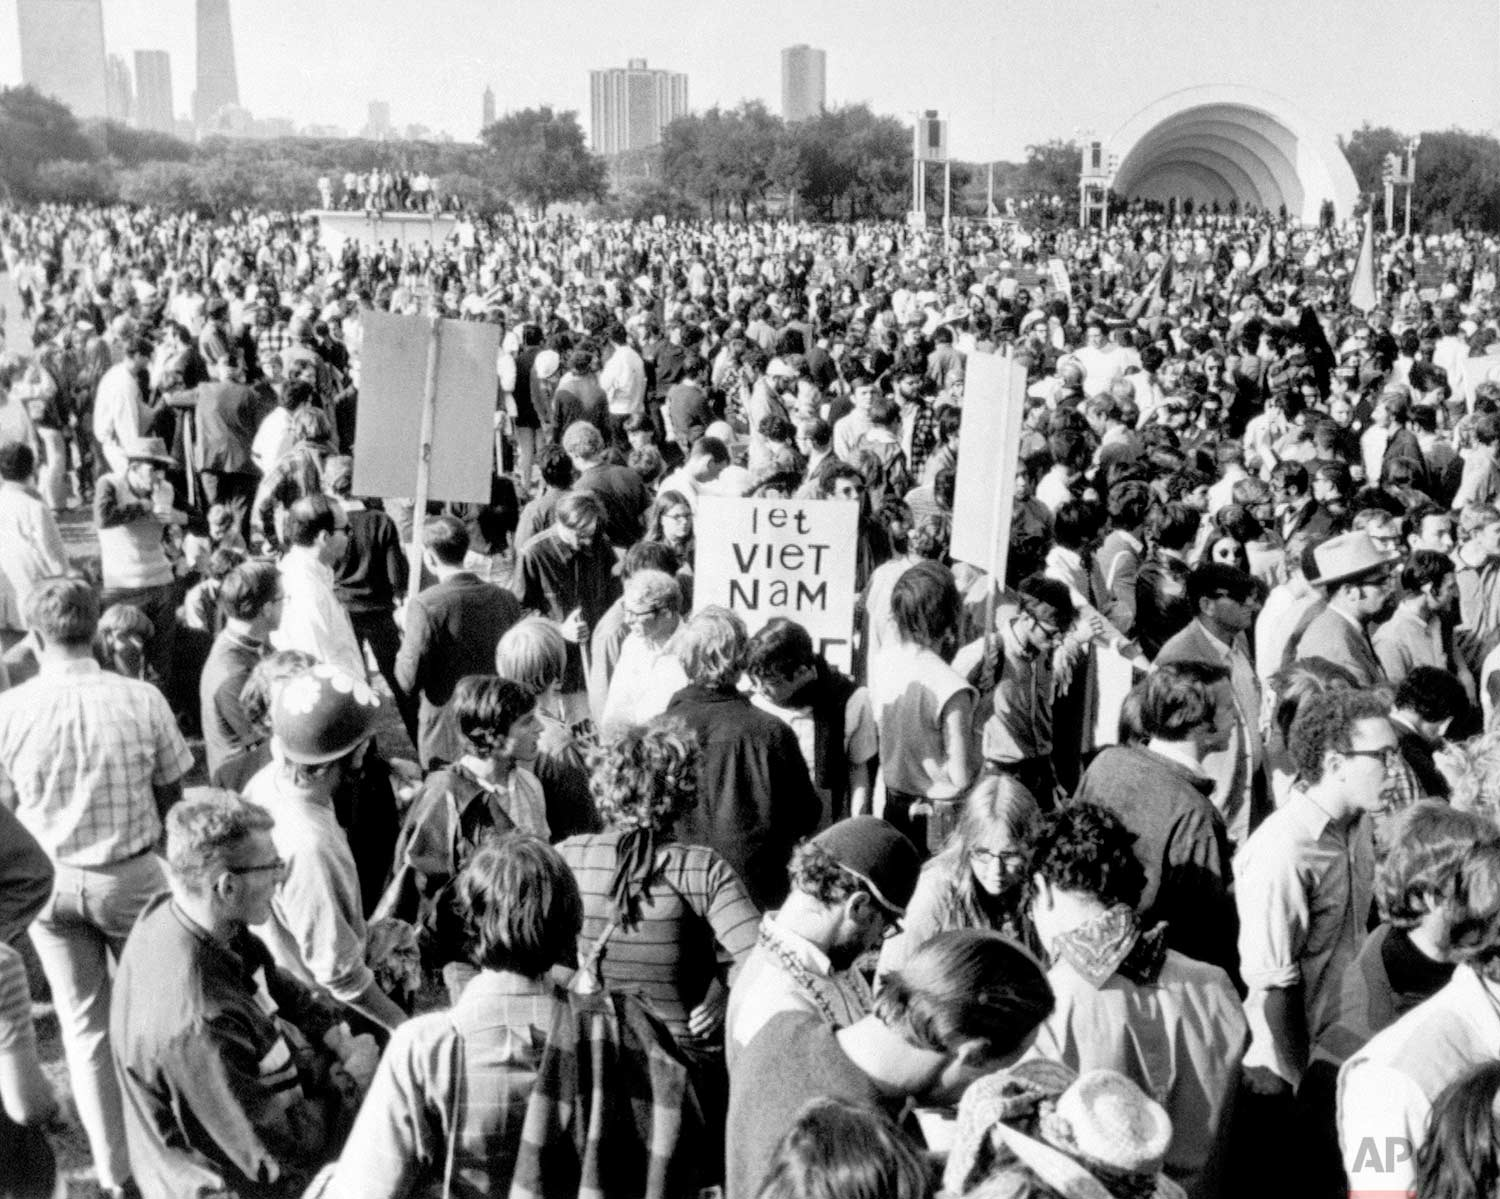 An estimated 9000 anti-war demonstrators gather in Chicago's Grant Park on August 28, 1968, with the announced intention of marching on the site of the Democratic National Convention, the International Amphitheater. Police, who had warned the march would not be permitted, moved into the middle of the crowd swinging clubs and were showered with rocks, bottles and trash in return. (AP Photo)